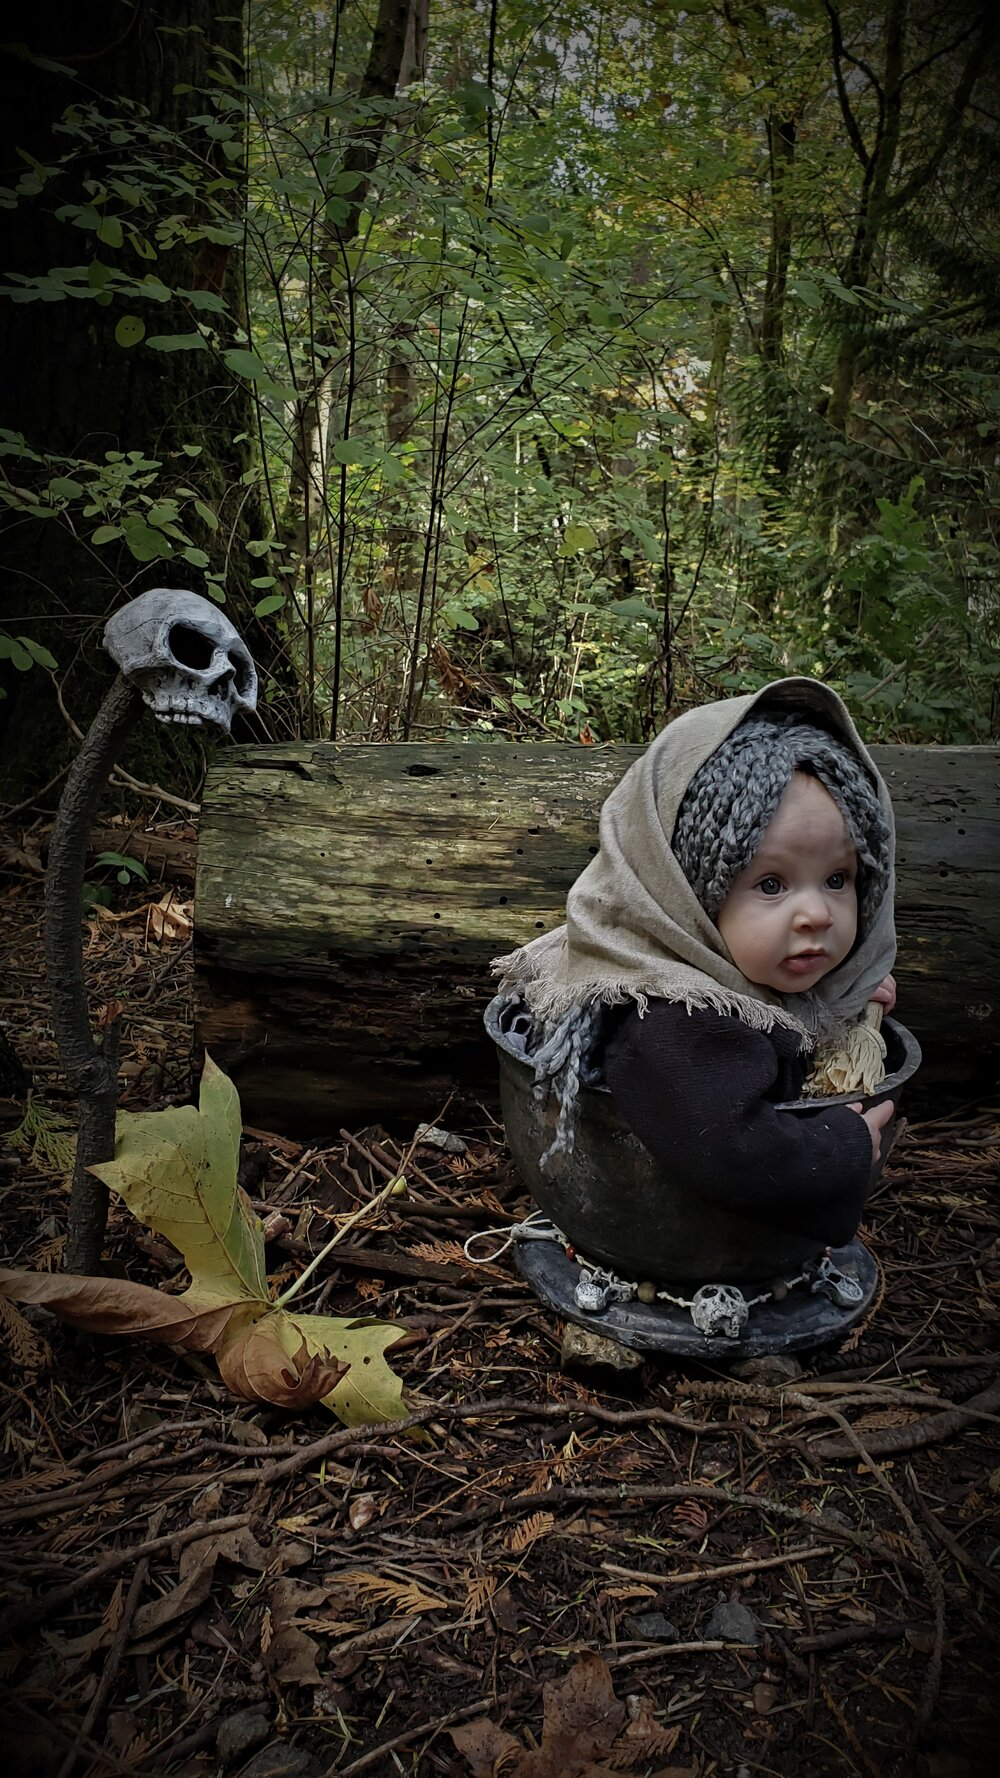 Baby Baba Yaga on ground in woods riding in mortar